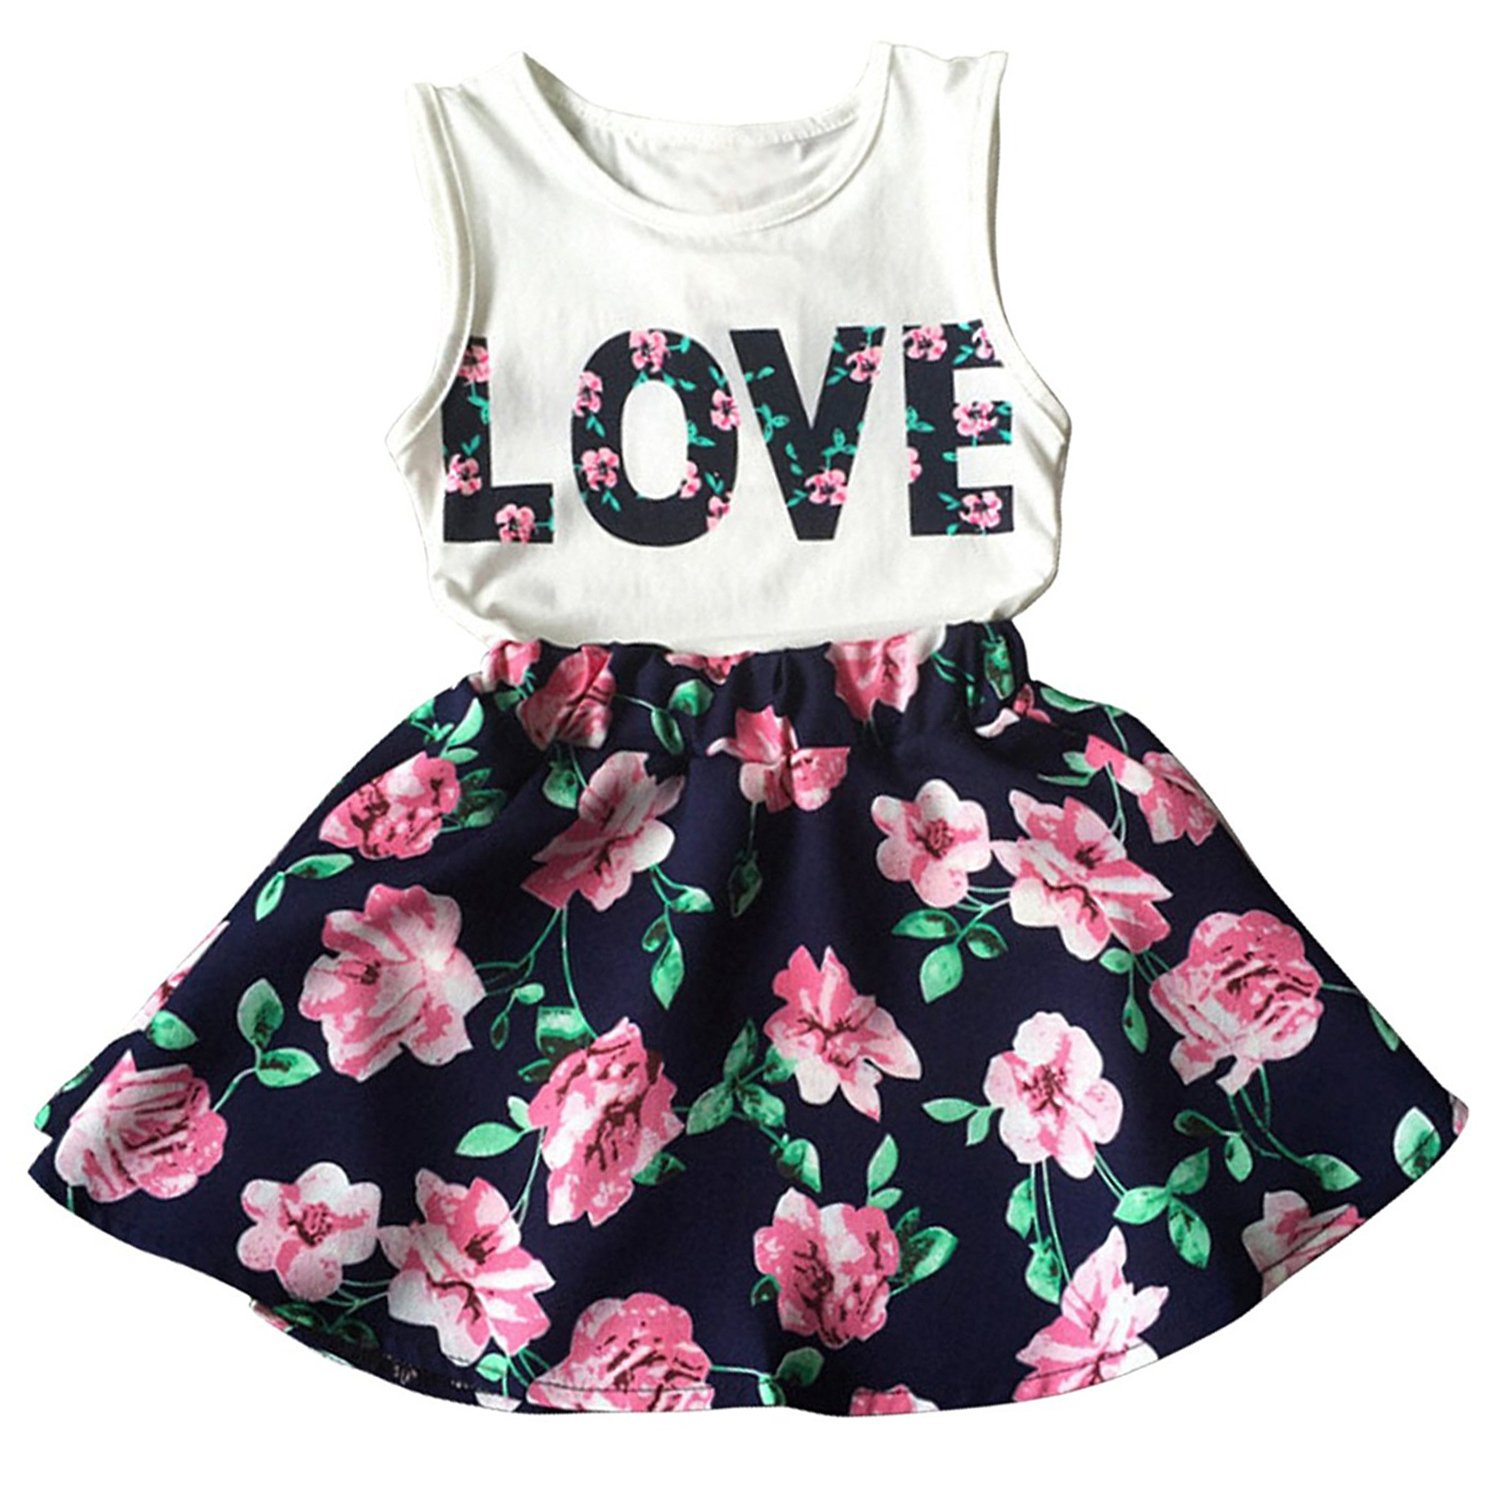 54b8b50ef Adorable Toddler Girls Letter Love Flower Clothing Sets Summer Tank Top and  Short Skirt Kids 2pcs Outfits Size Measurement: ○Size 100-Age(2T): ...